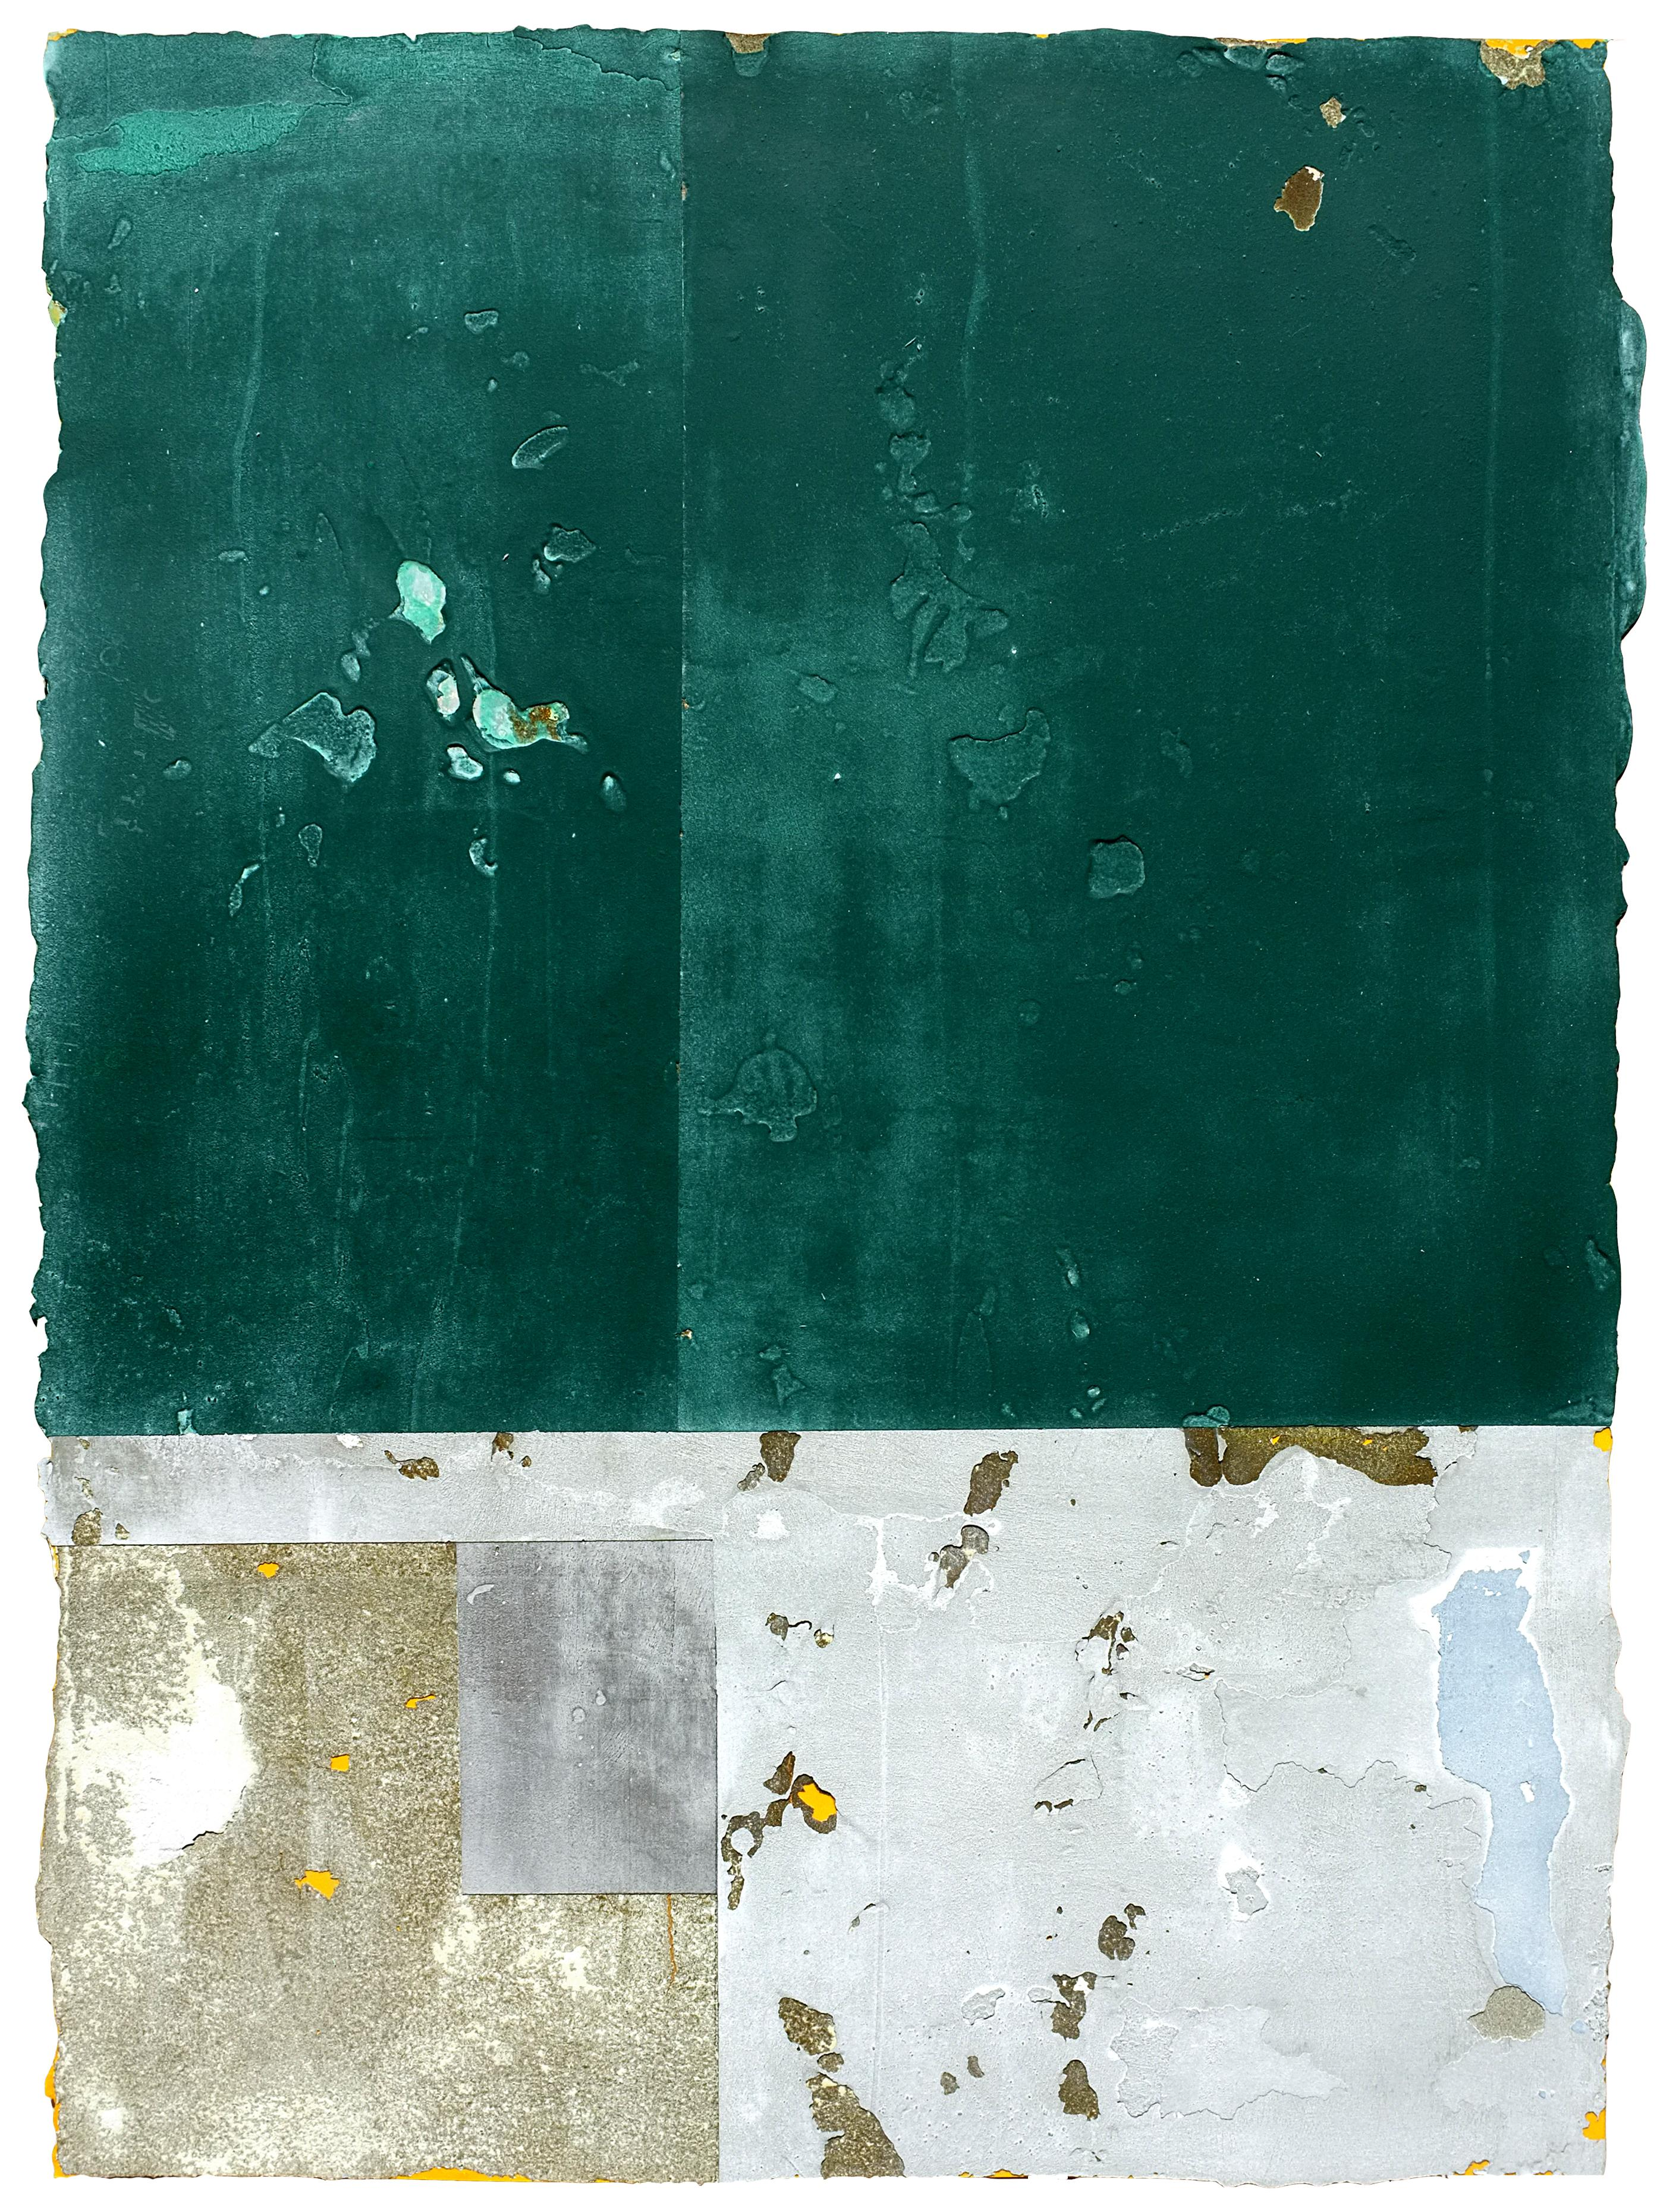 Tropical Modernism, Contemporary Abstract Art Mixed Media Green Collage Paper